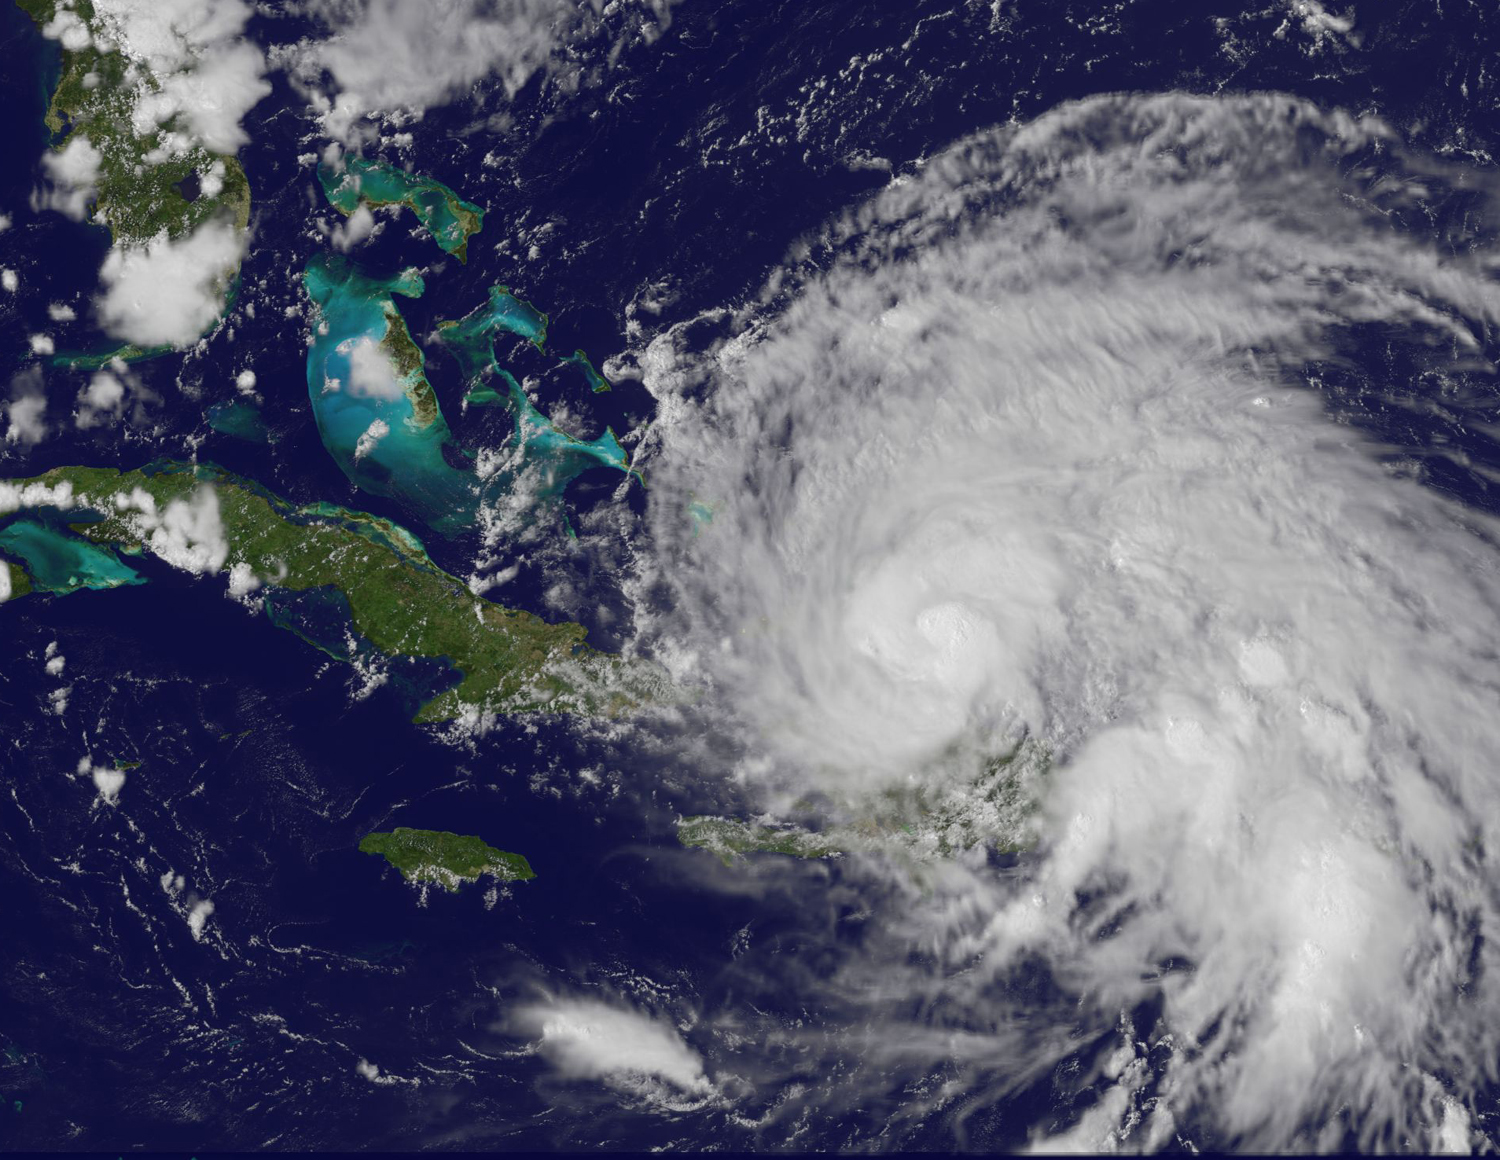 A NASA satellite image from August 23, 2011 of Hurricane Irene, the Atlantic basin's first hurricane of 2011. <div class='credit'><strong>Credit:</strong> A NASA satellite image from August 23, 2011 of Hurricane Irene, the Atlantic basin's first hurricane of 2011. </div>